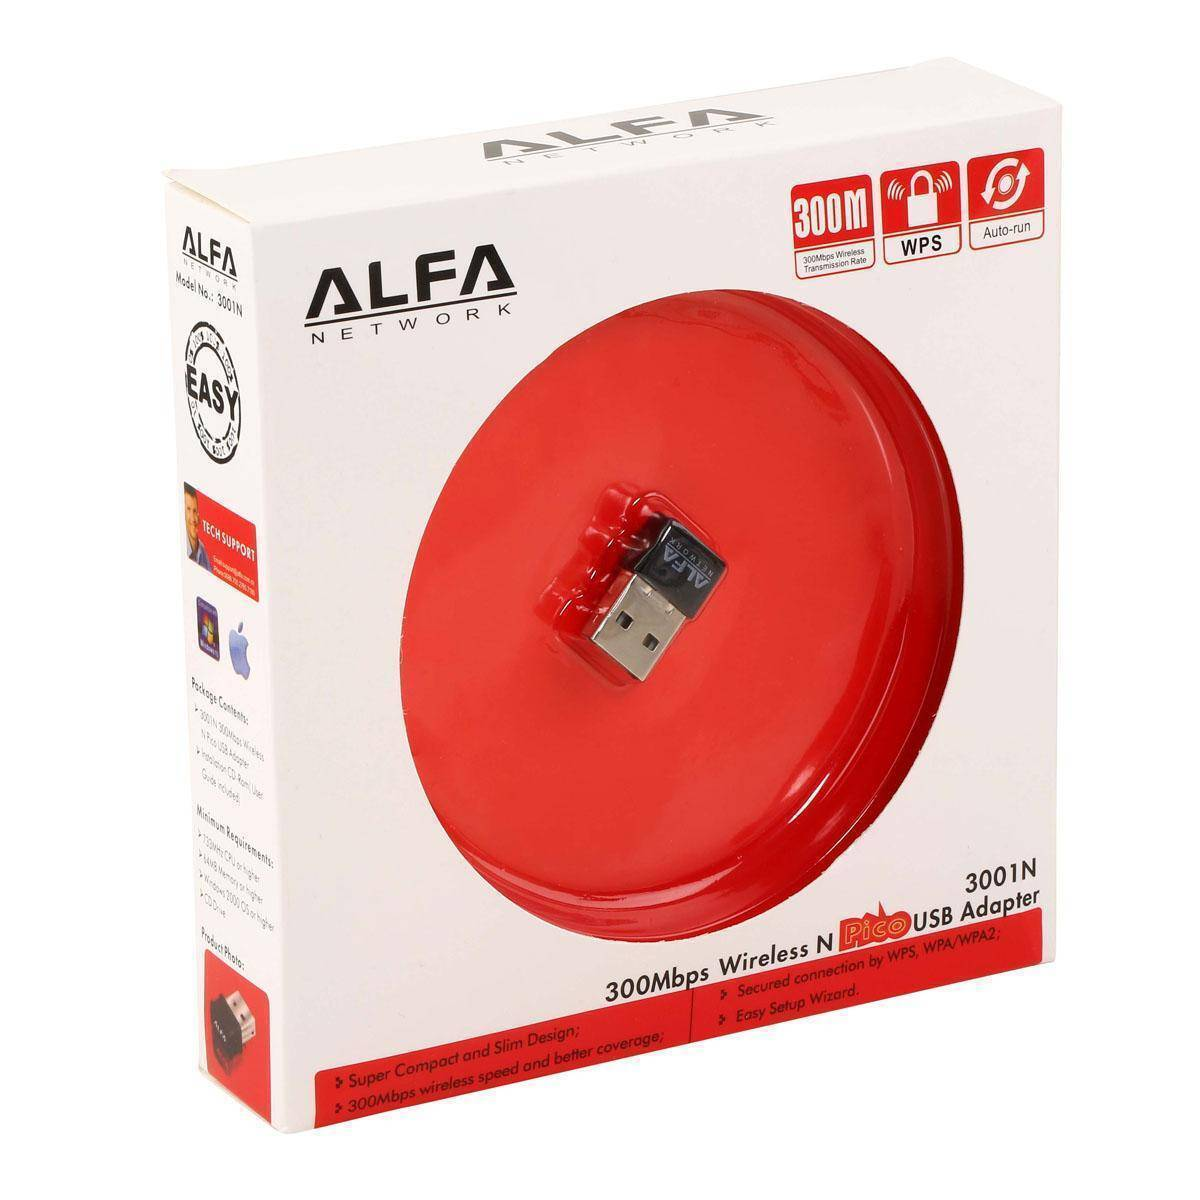 Alfa Network 300Mbps Wireless Adapter Black